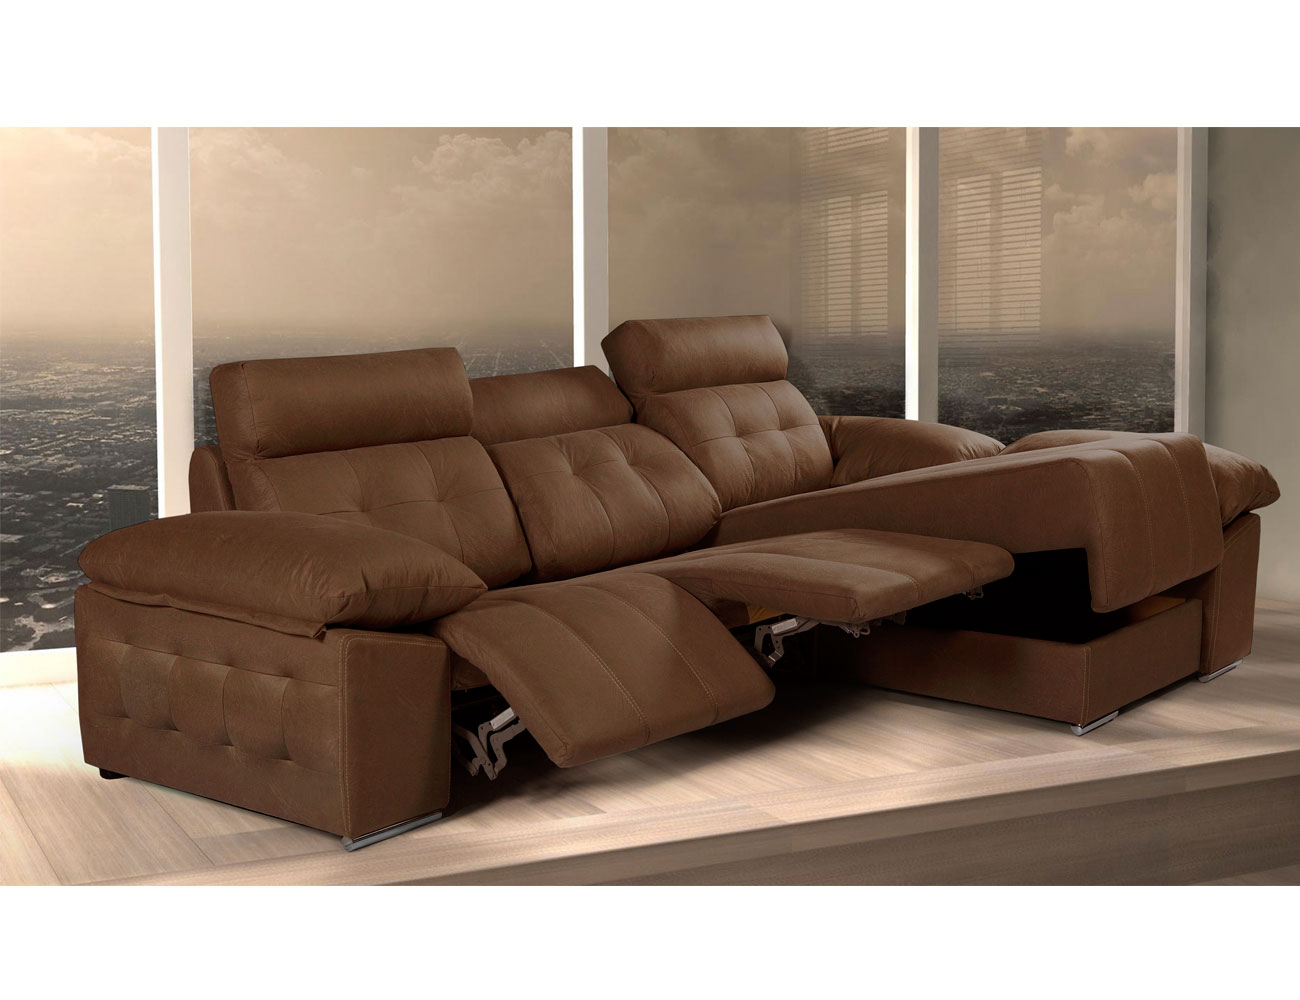 Sofa chaiselongue relax arcon electrico capitone2